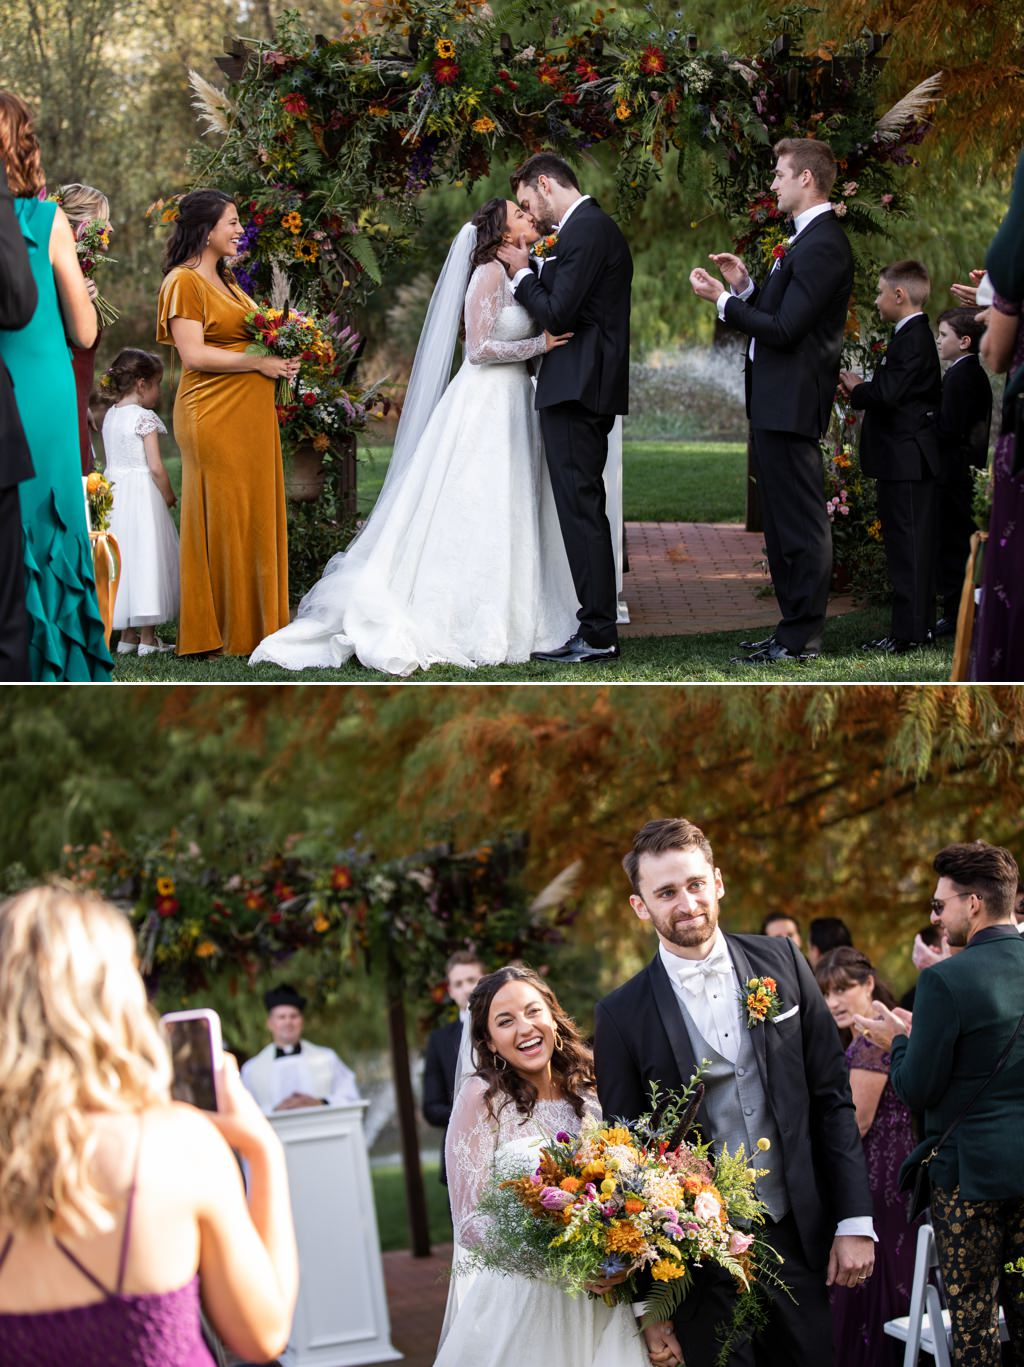 A bride and groom first kiss at a historic acres of hershey pa wedding ceremony